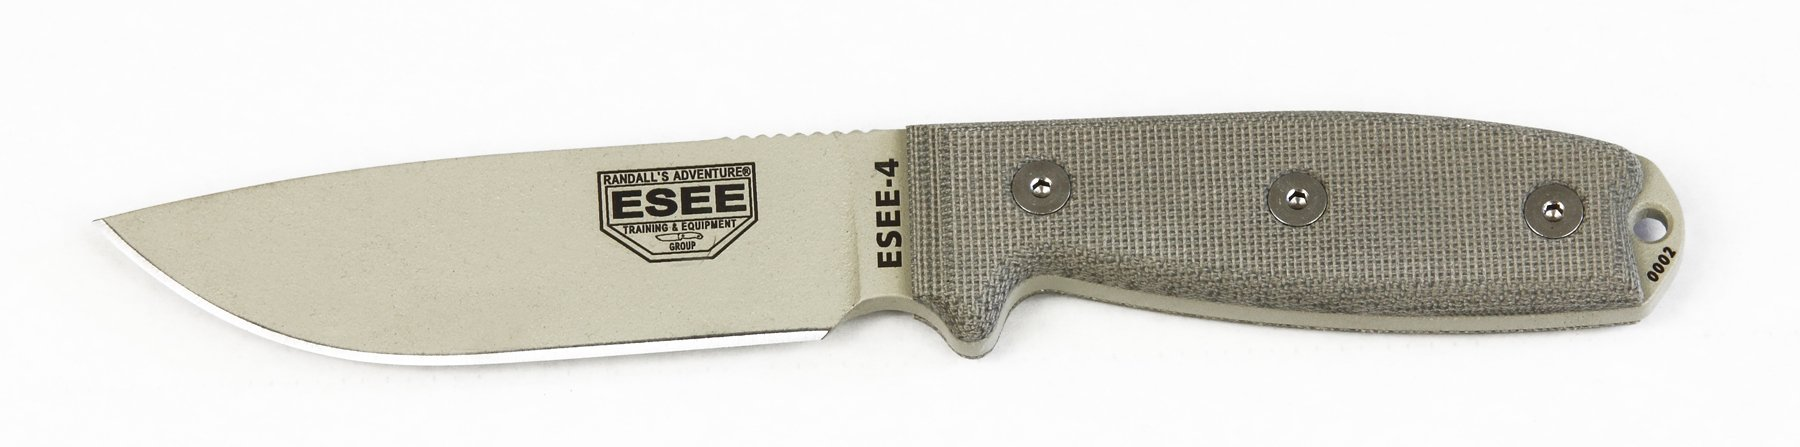 ESEE 4P-DT Desert Tan Fixed Blade Knife w/ OD Green Molded Polymer Sheath by ESEE